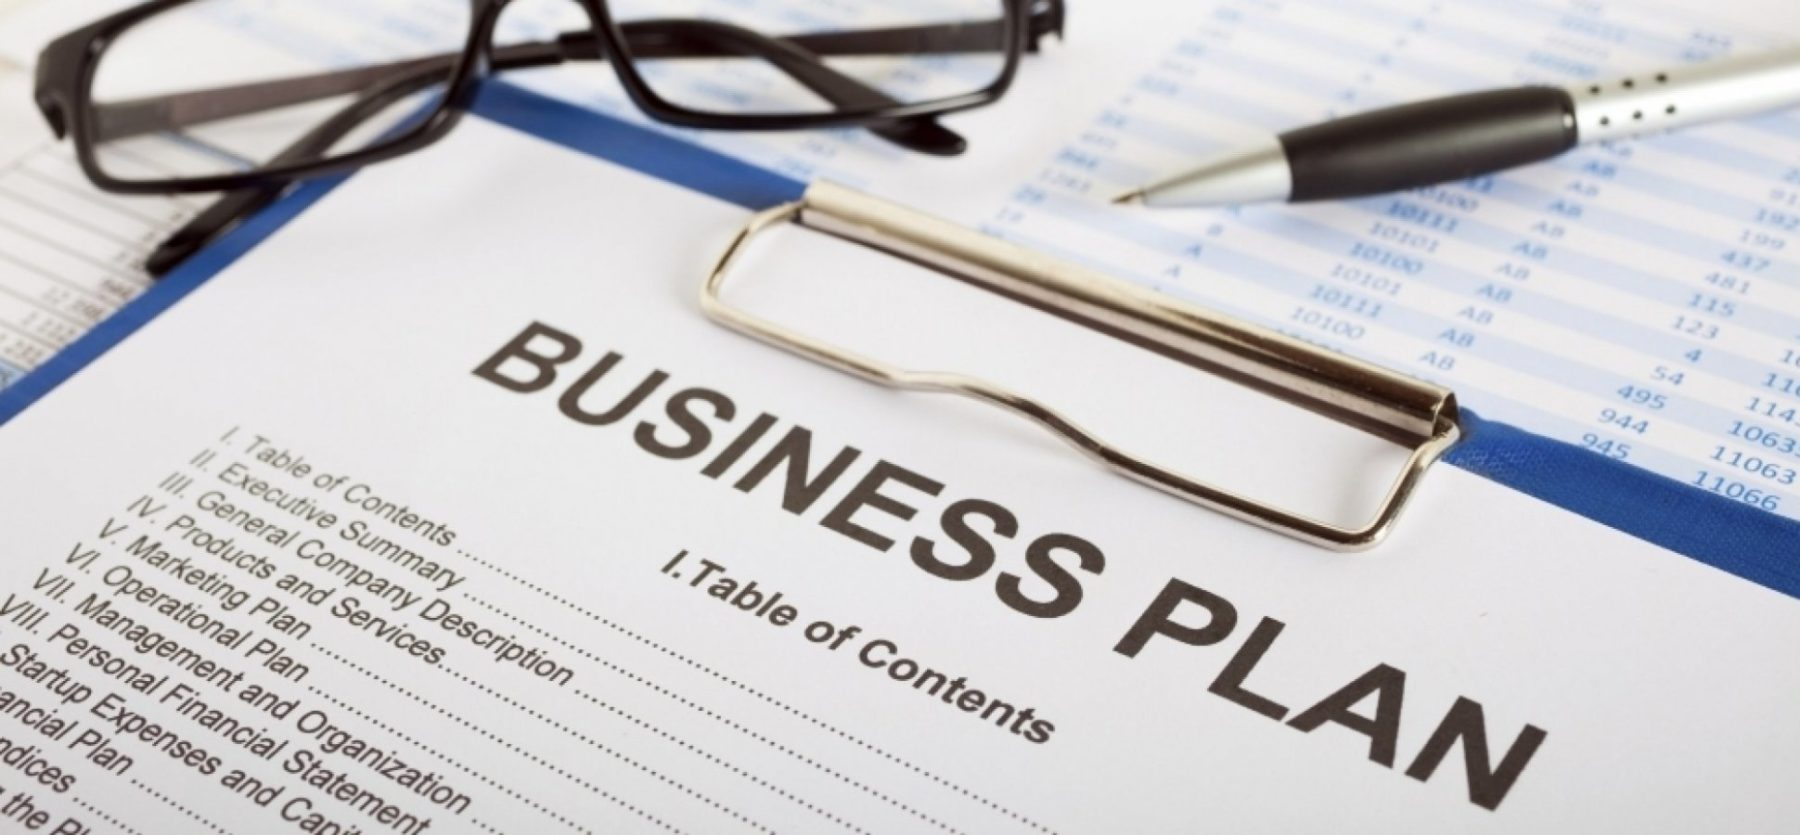 Business Plan Template -How to Make a One-page Business Plan